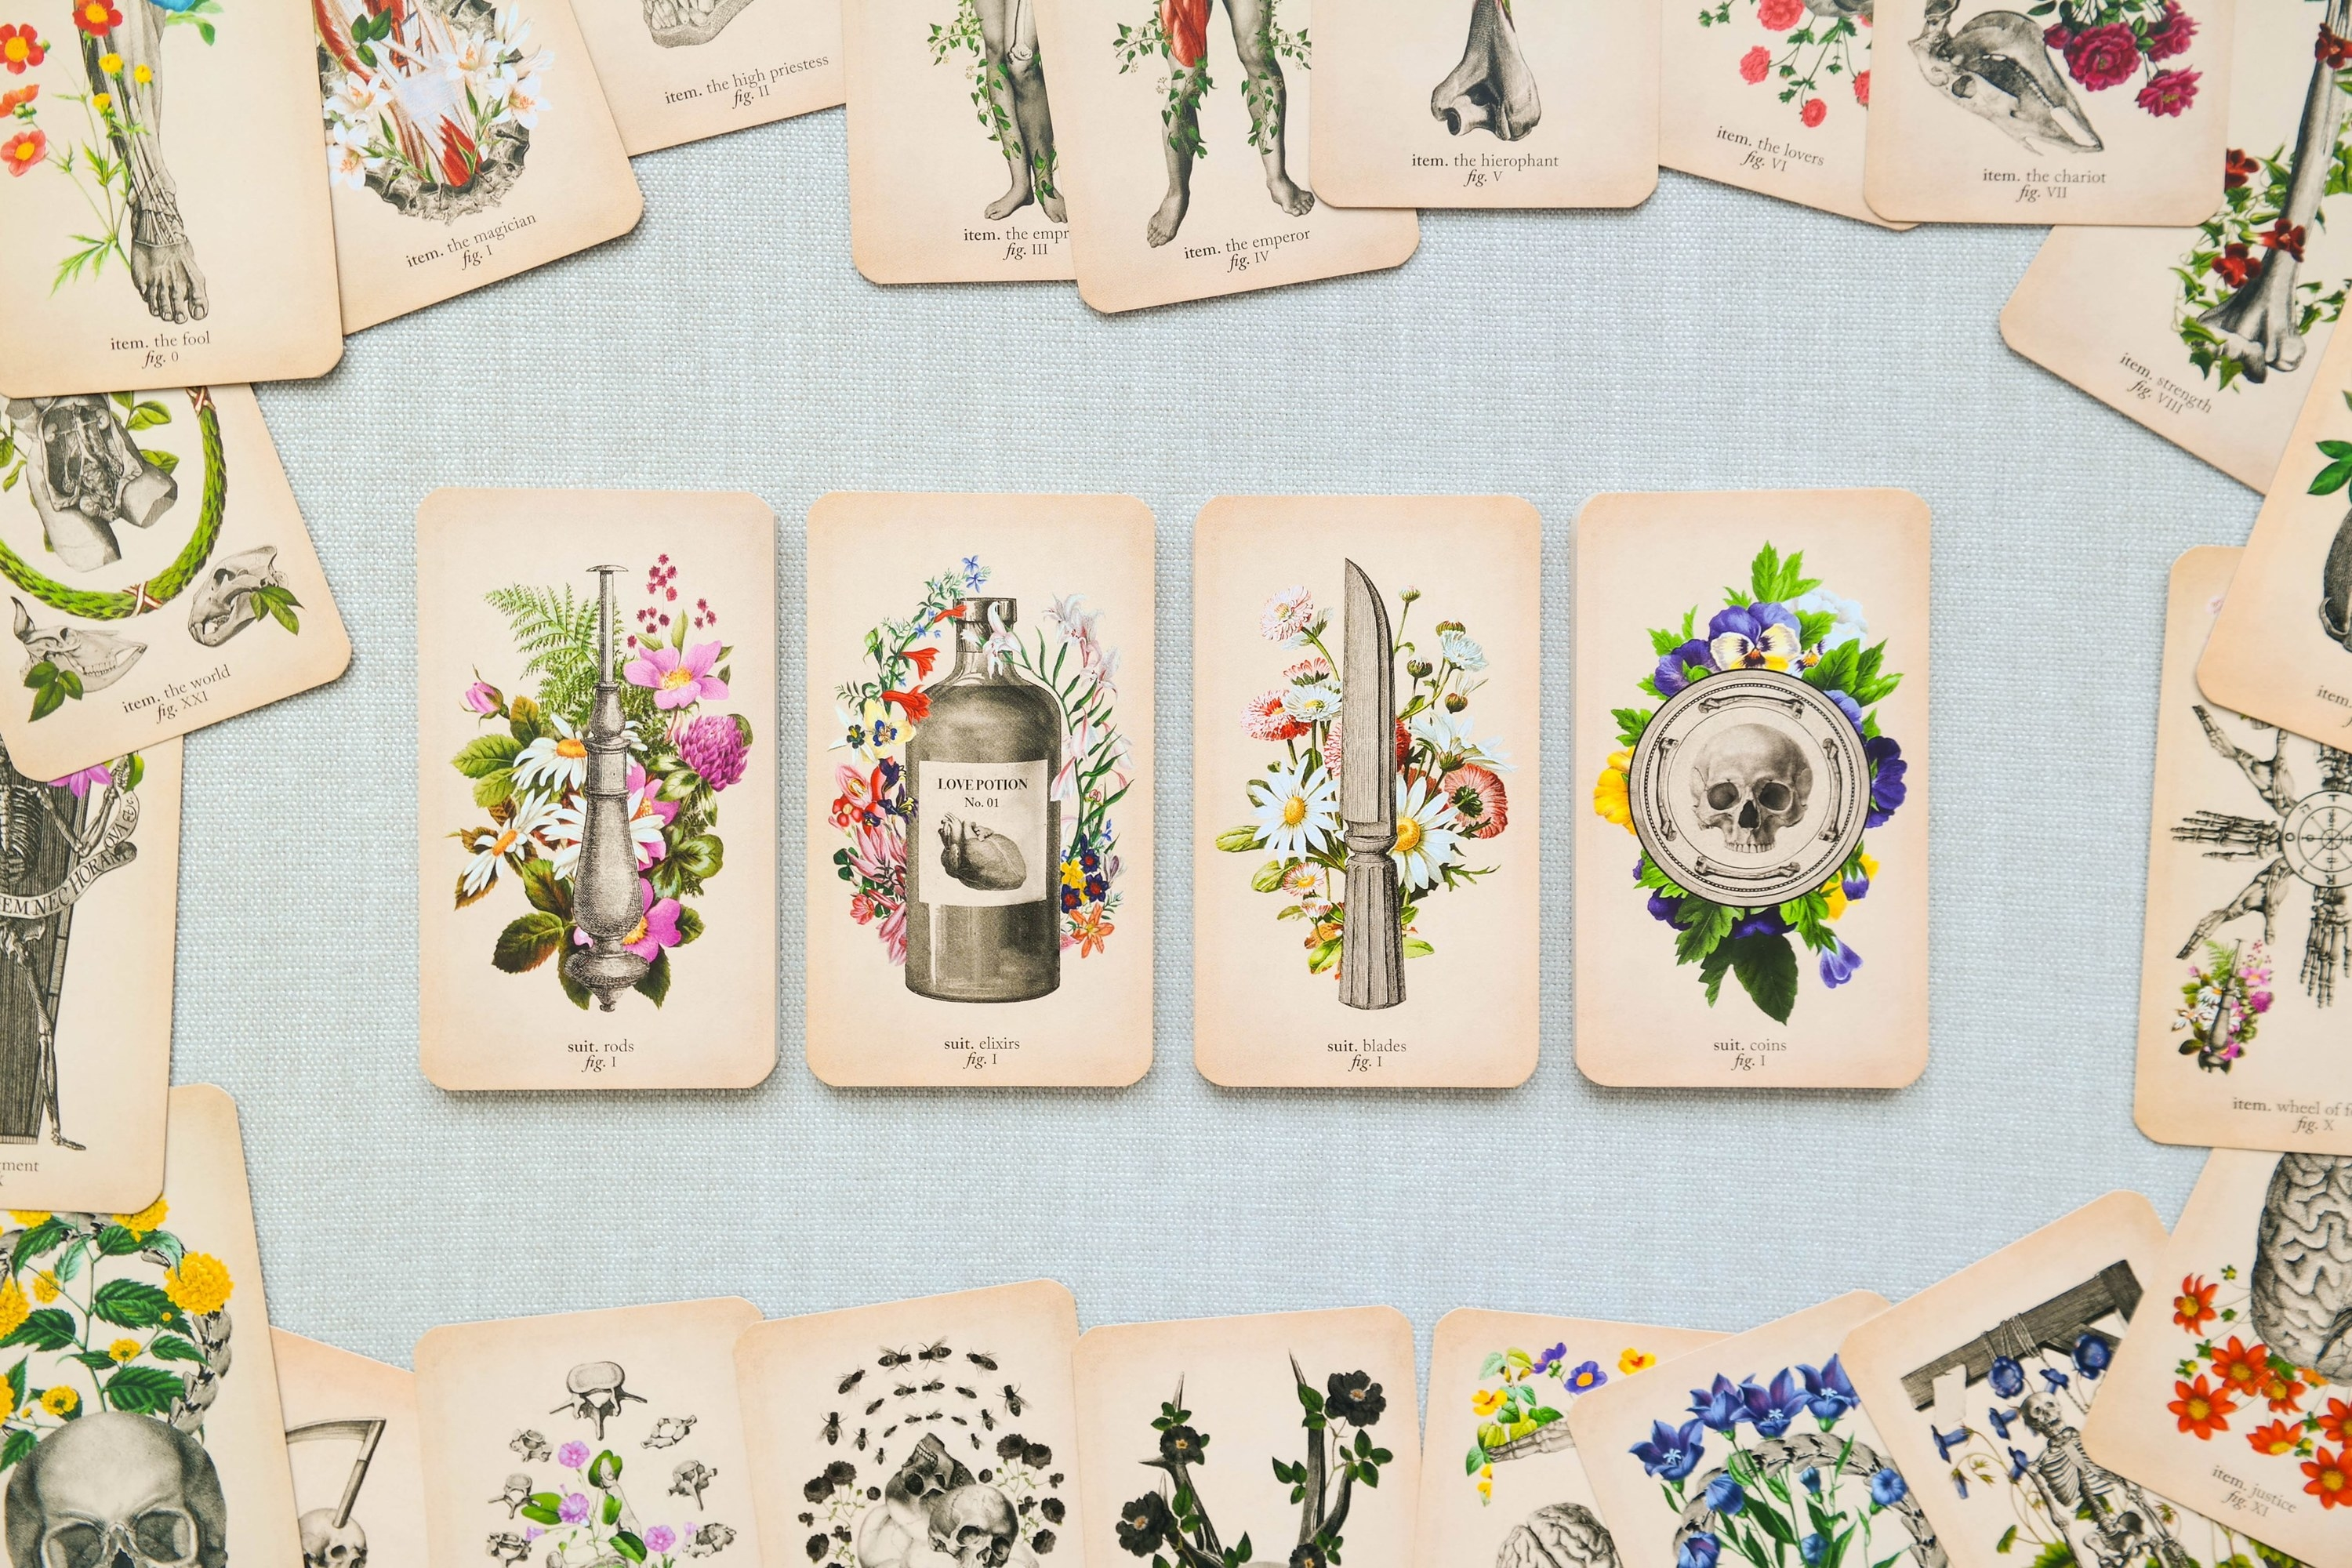 The four suits of the Antique Anatomy deck lay in four decks, face up, showing the ace of rods, of elixirs, of blades, and of coins, respectively, surrounded by the Major Arcana cards laying face up